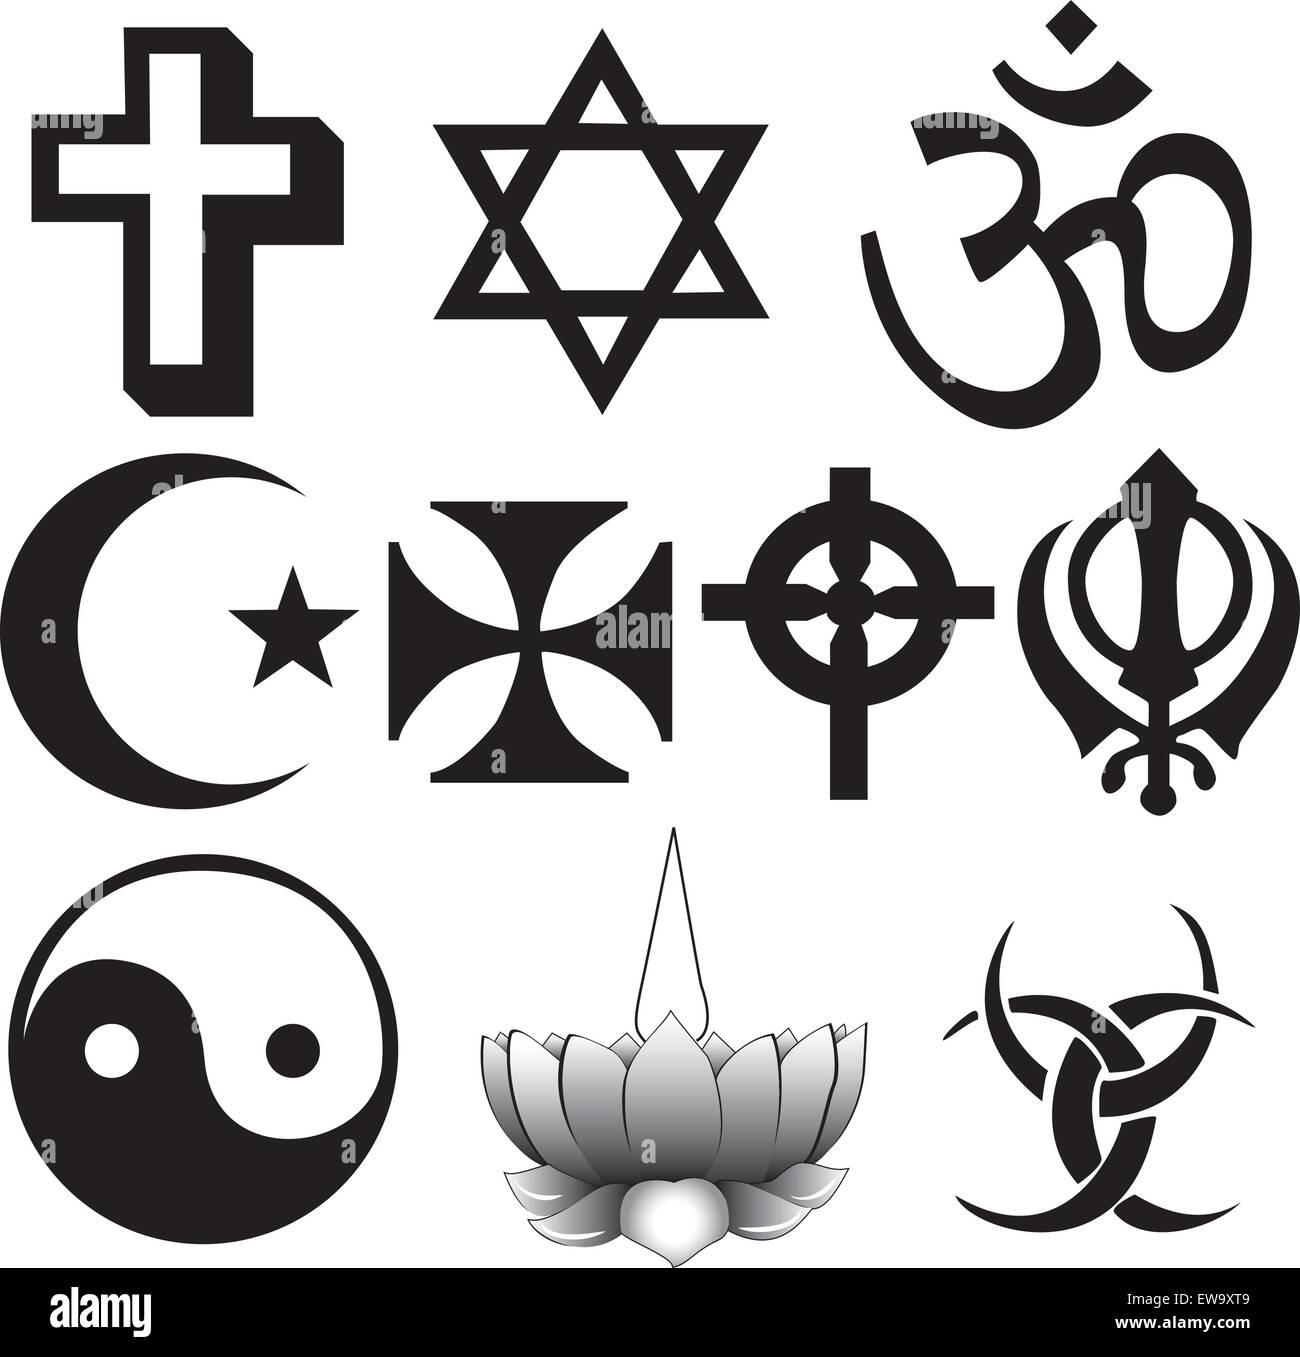 Different religions symbols stock vector art illustration different religions symbols biocorpaavc Image collections